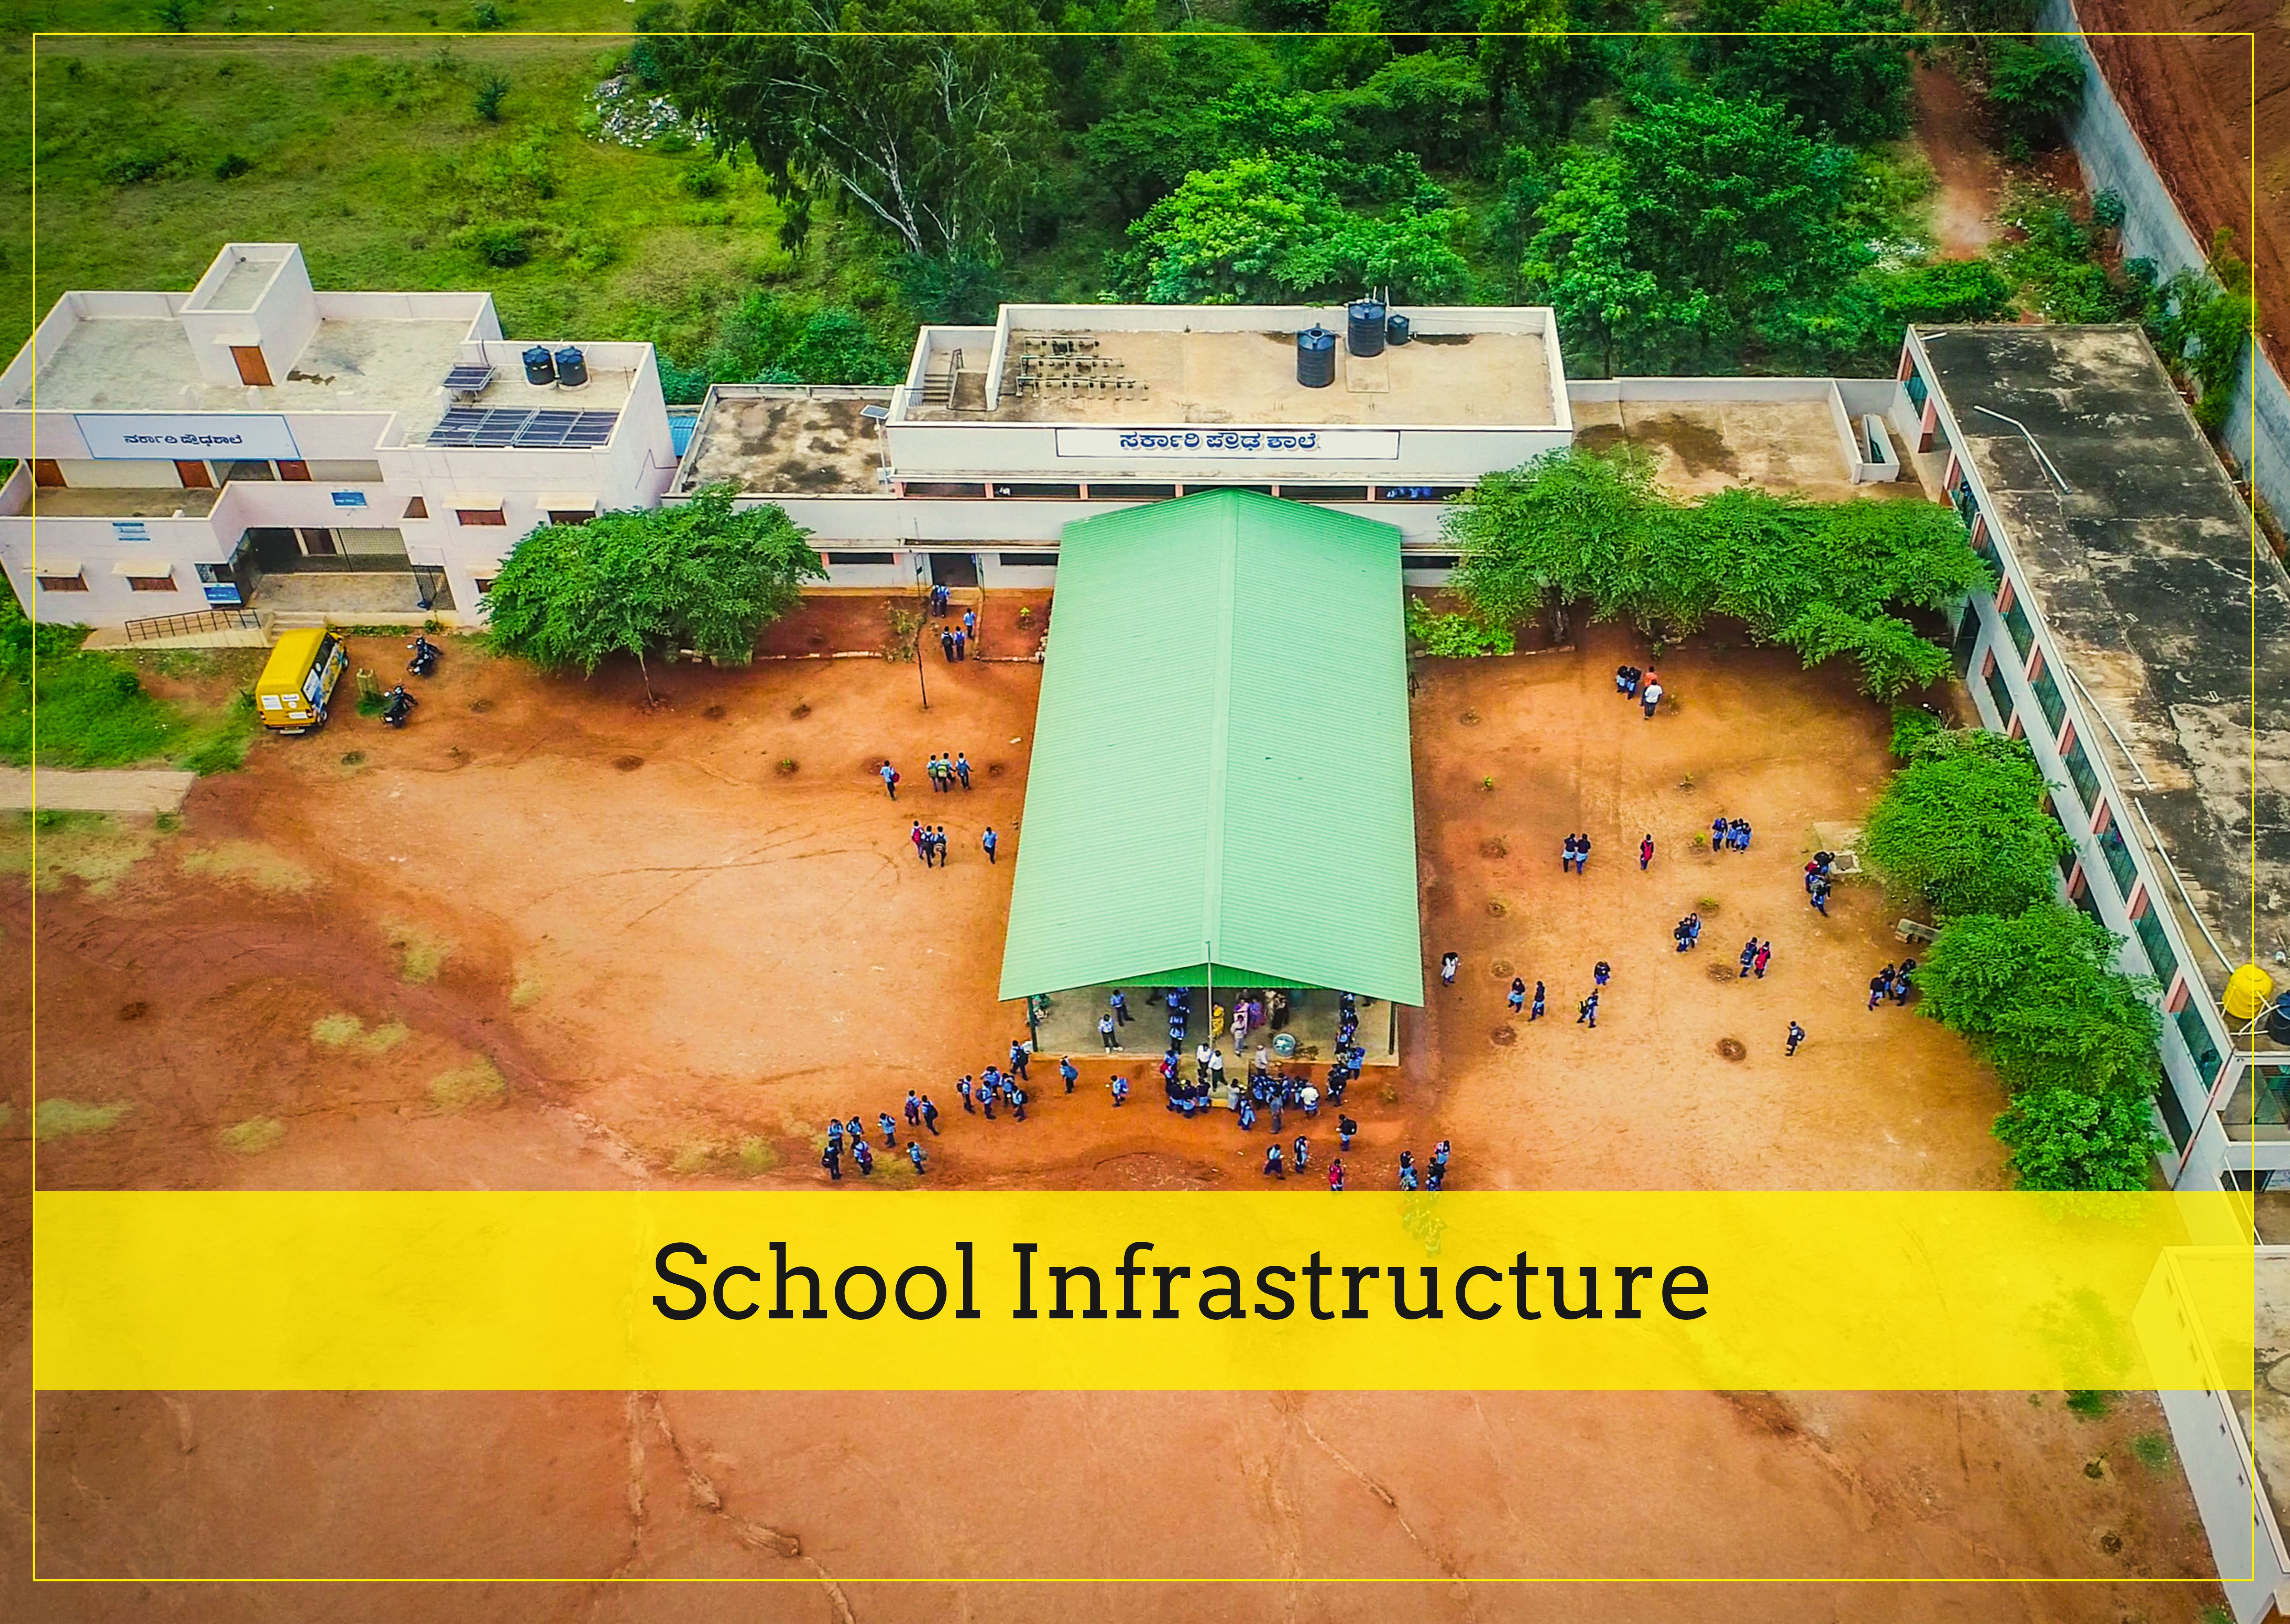 School-Infrastructure development by Bal Utsav